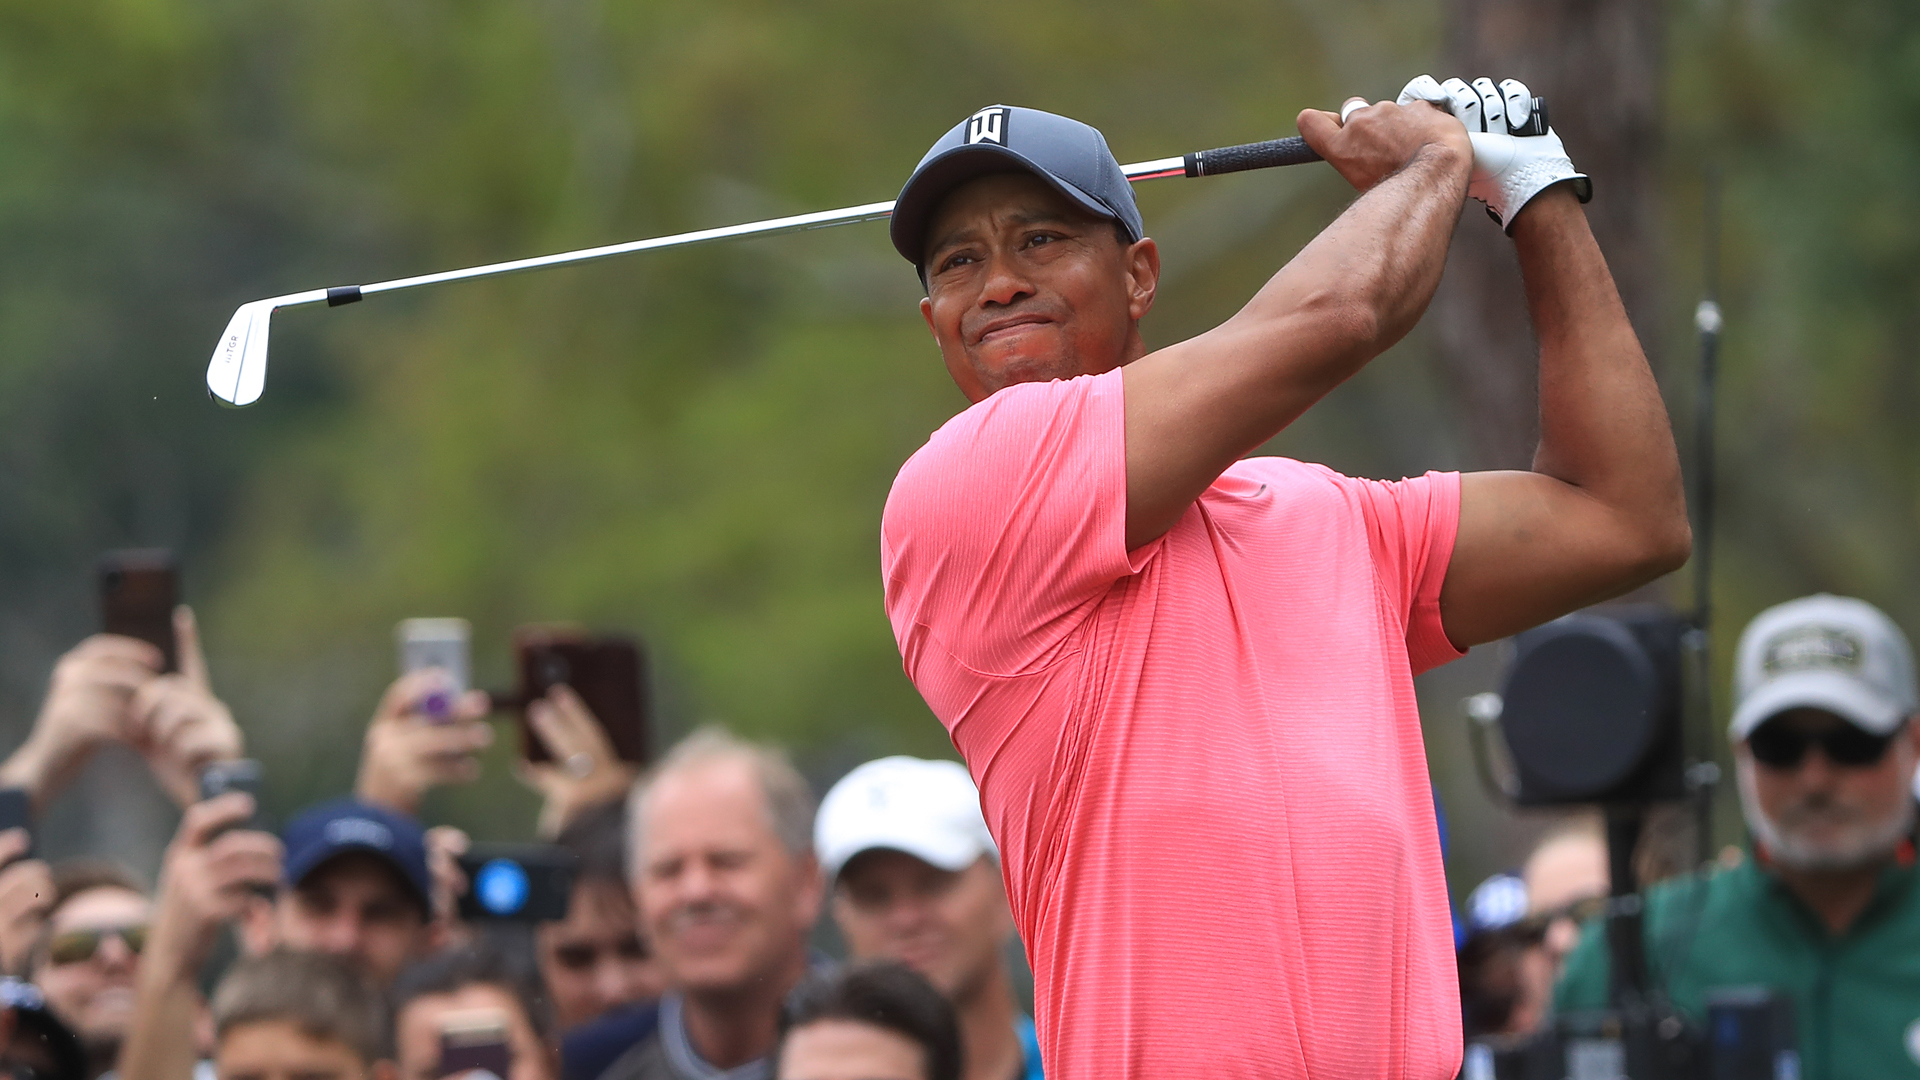 Players Championship preview: Tiger Woods, Jason Day headline 'fifth major' field